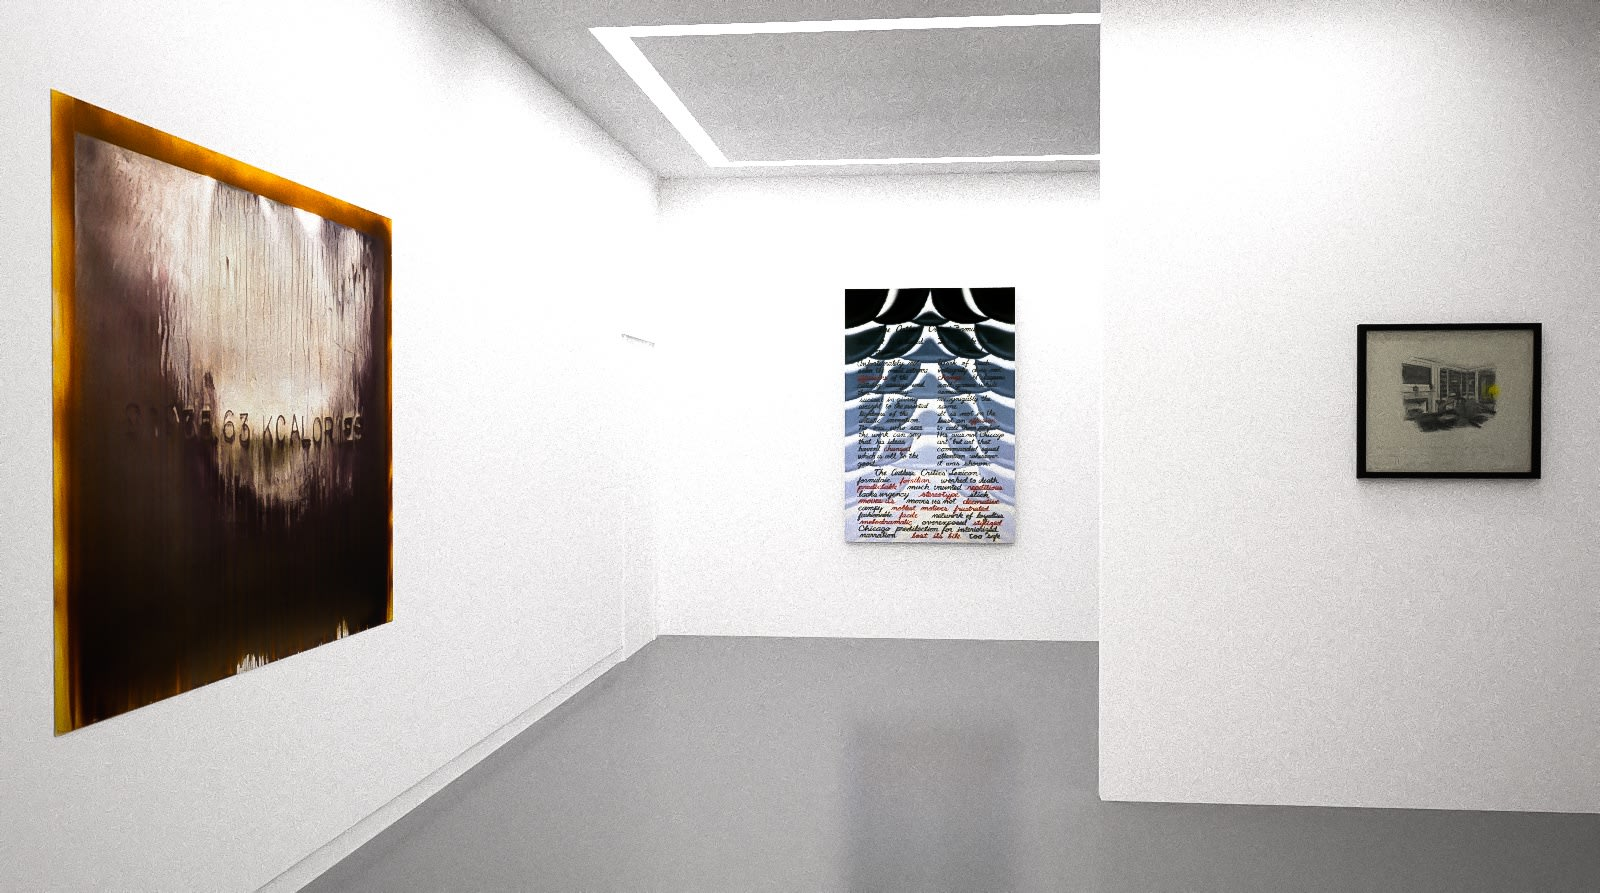 Michael Joo, Roger brown, and Allen Ruppersburg in The Written Word (virtual exhibition view), 2020, Kavi Gupta